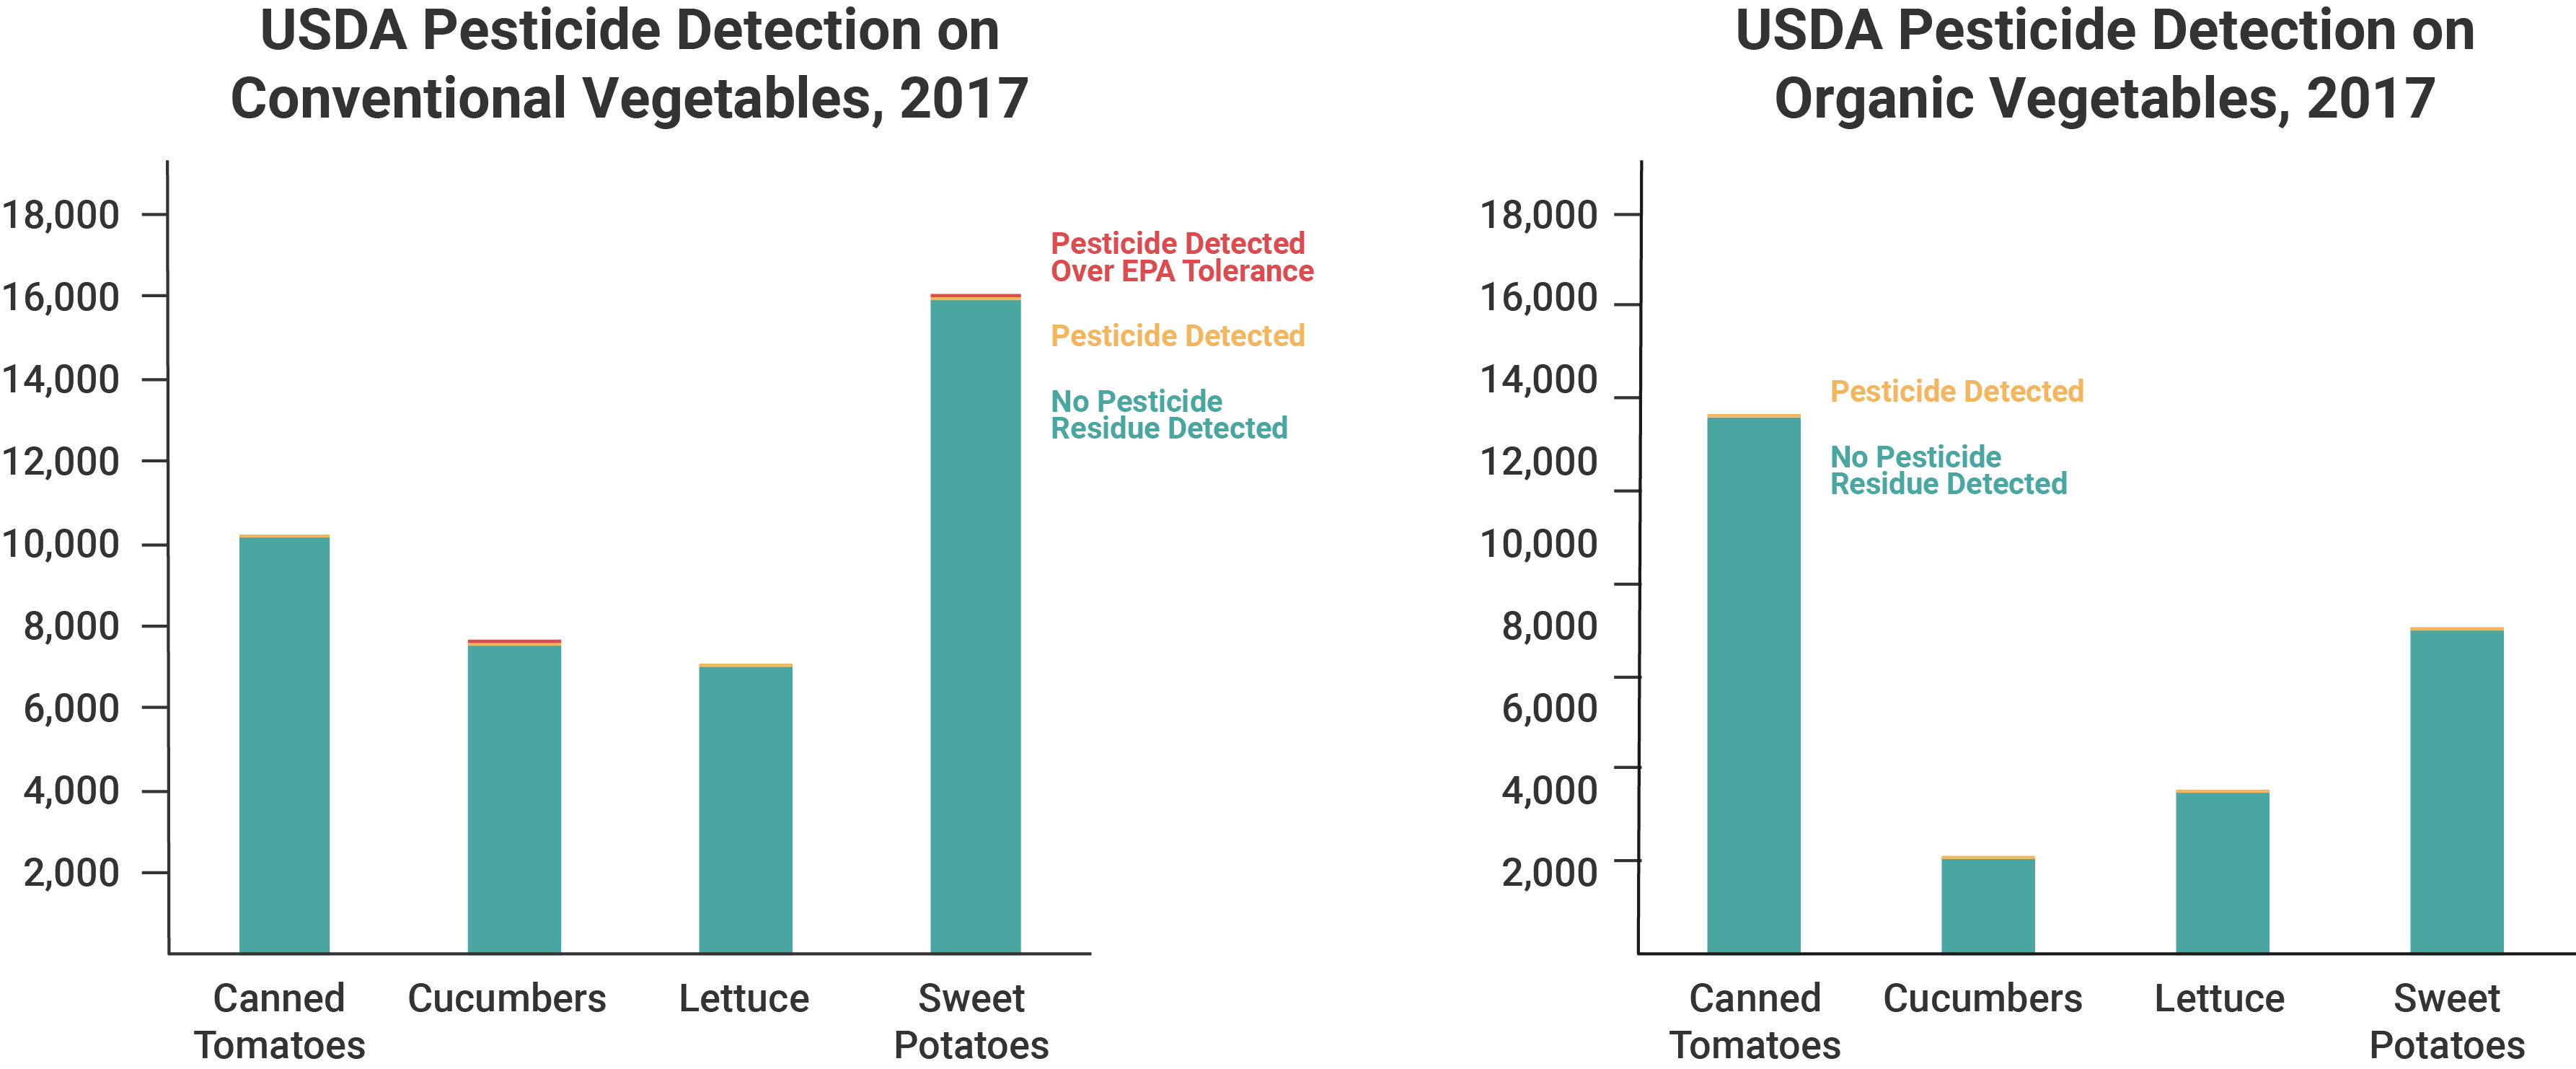 Two graphs showing USDA pesticide detection on conventional and organic vegetables in 2017, including no pesticide detected, pesticide detected, and pesticide detected over EPA tolerance.